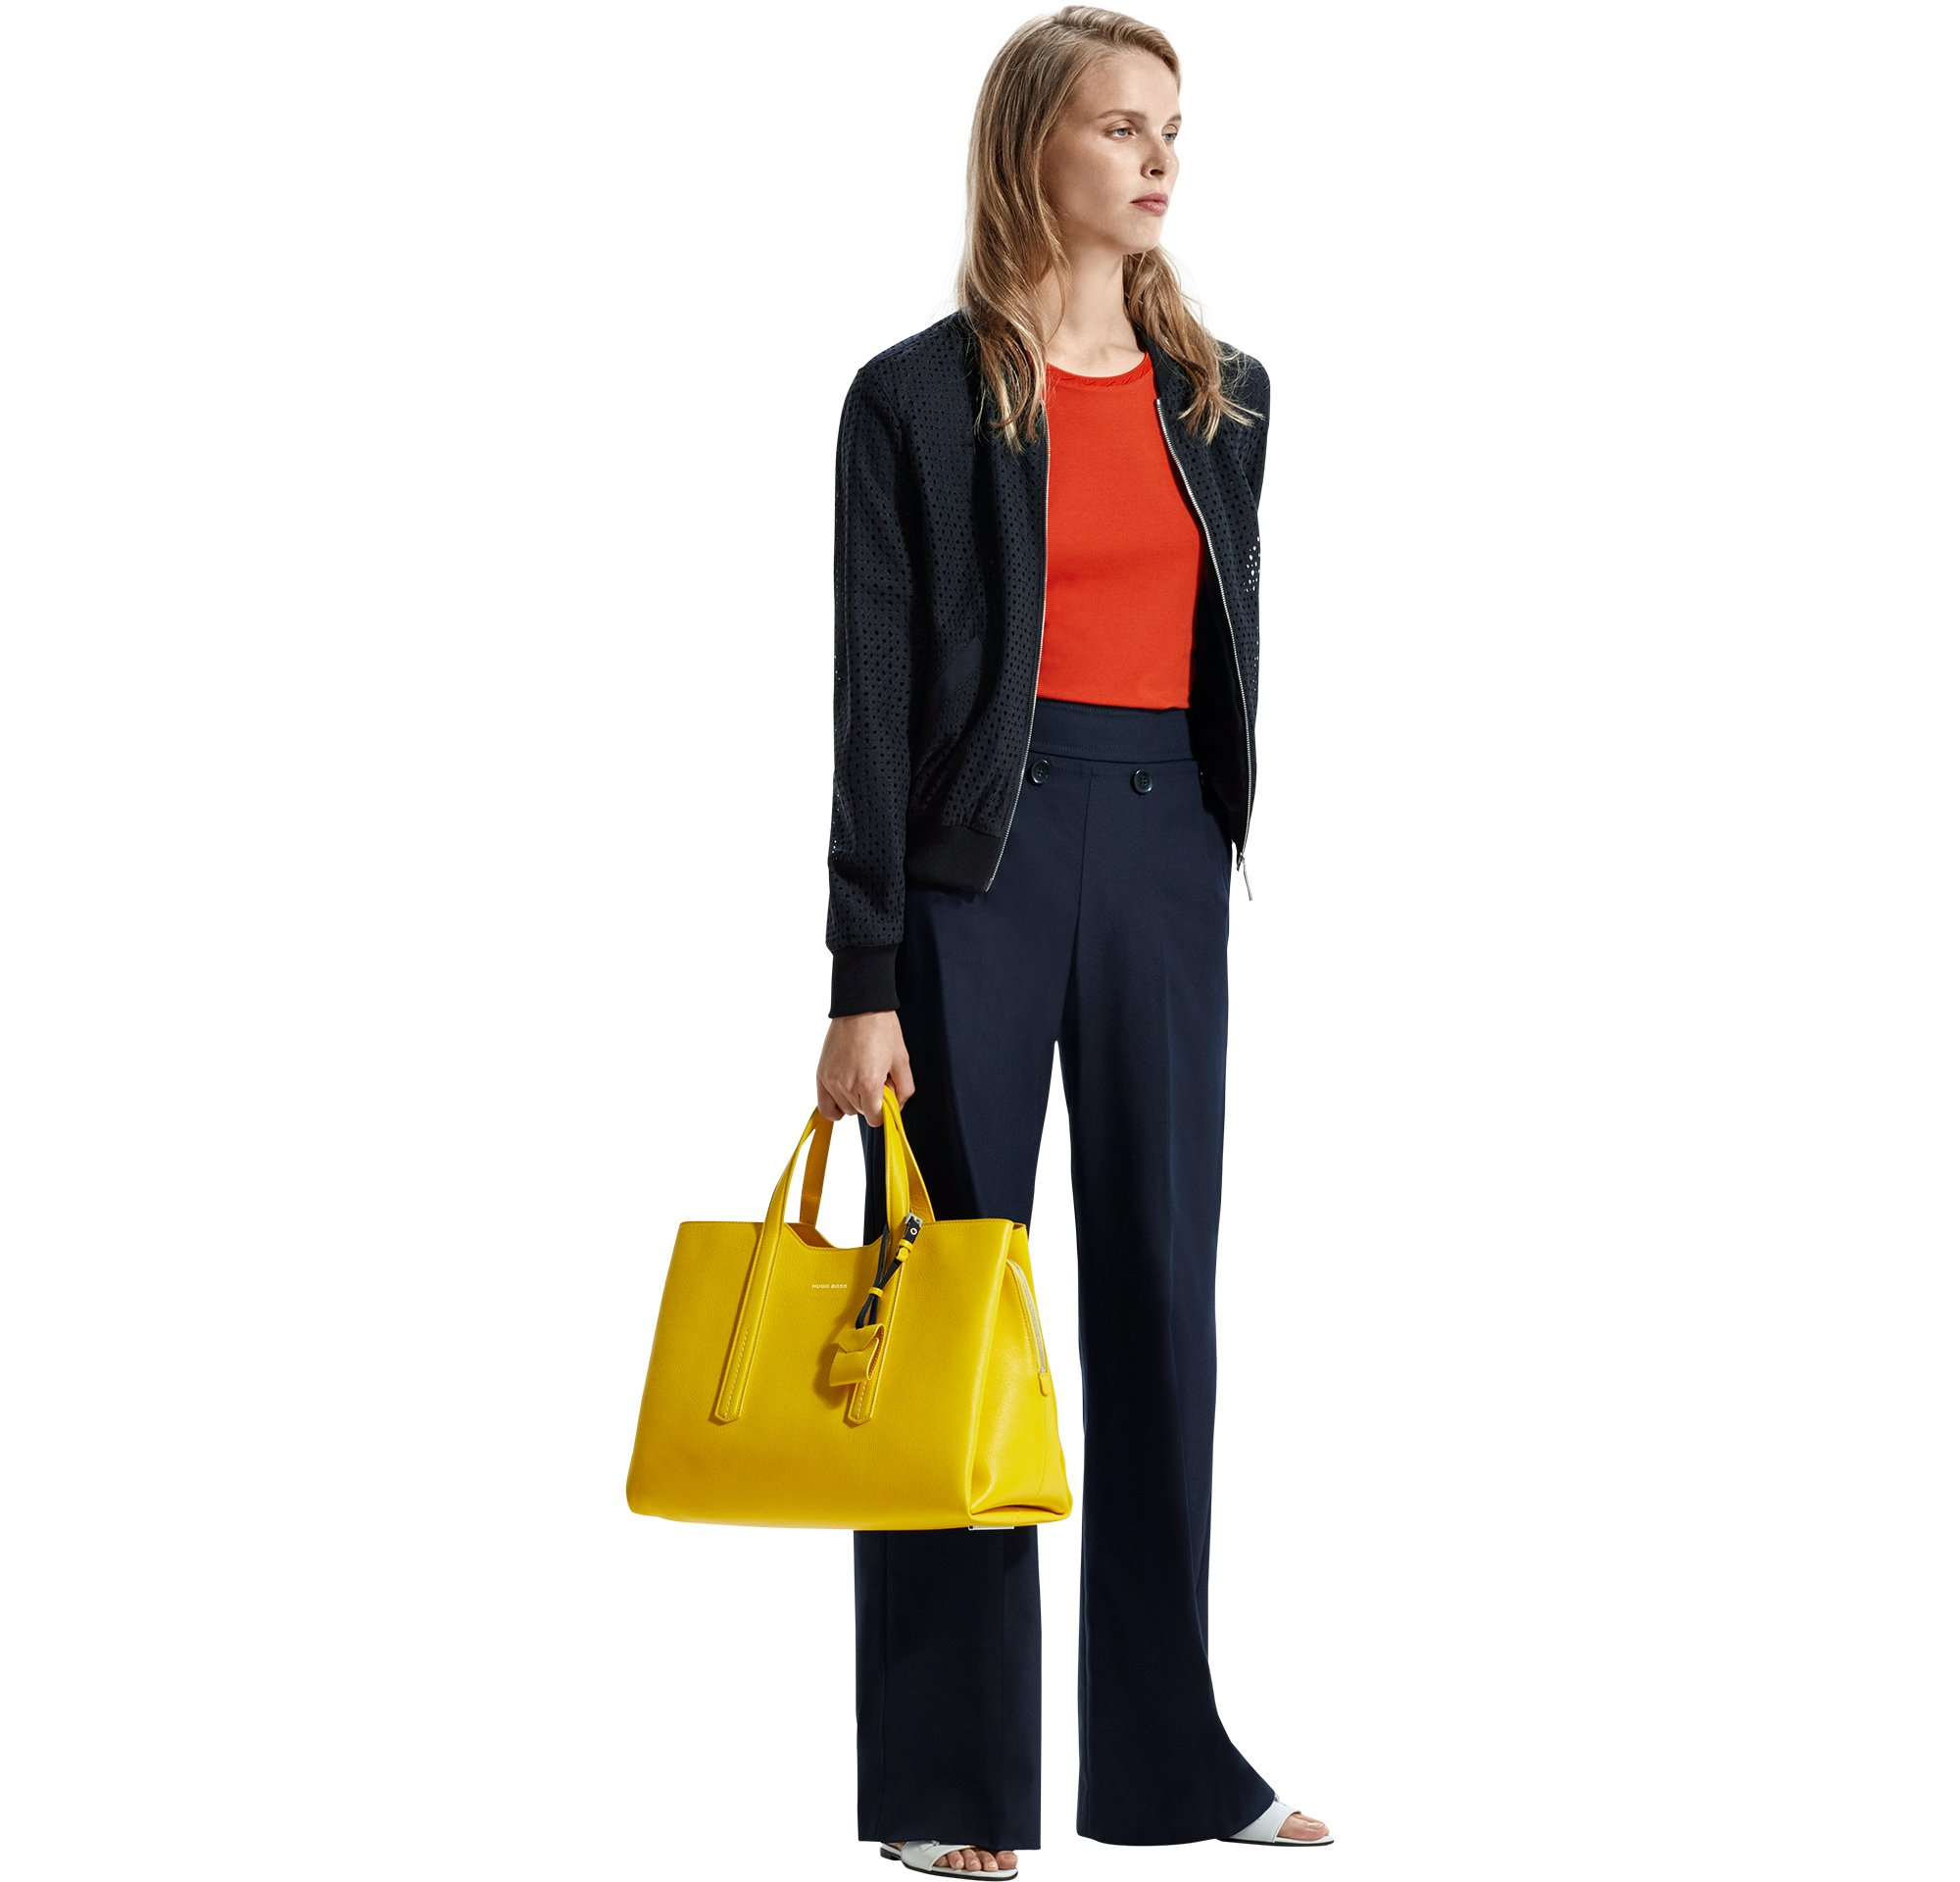 CTG_BOSS_Women_SR18_Look_10,